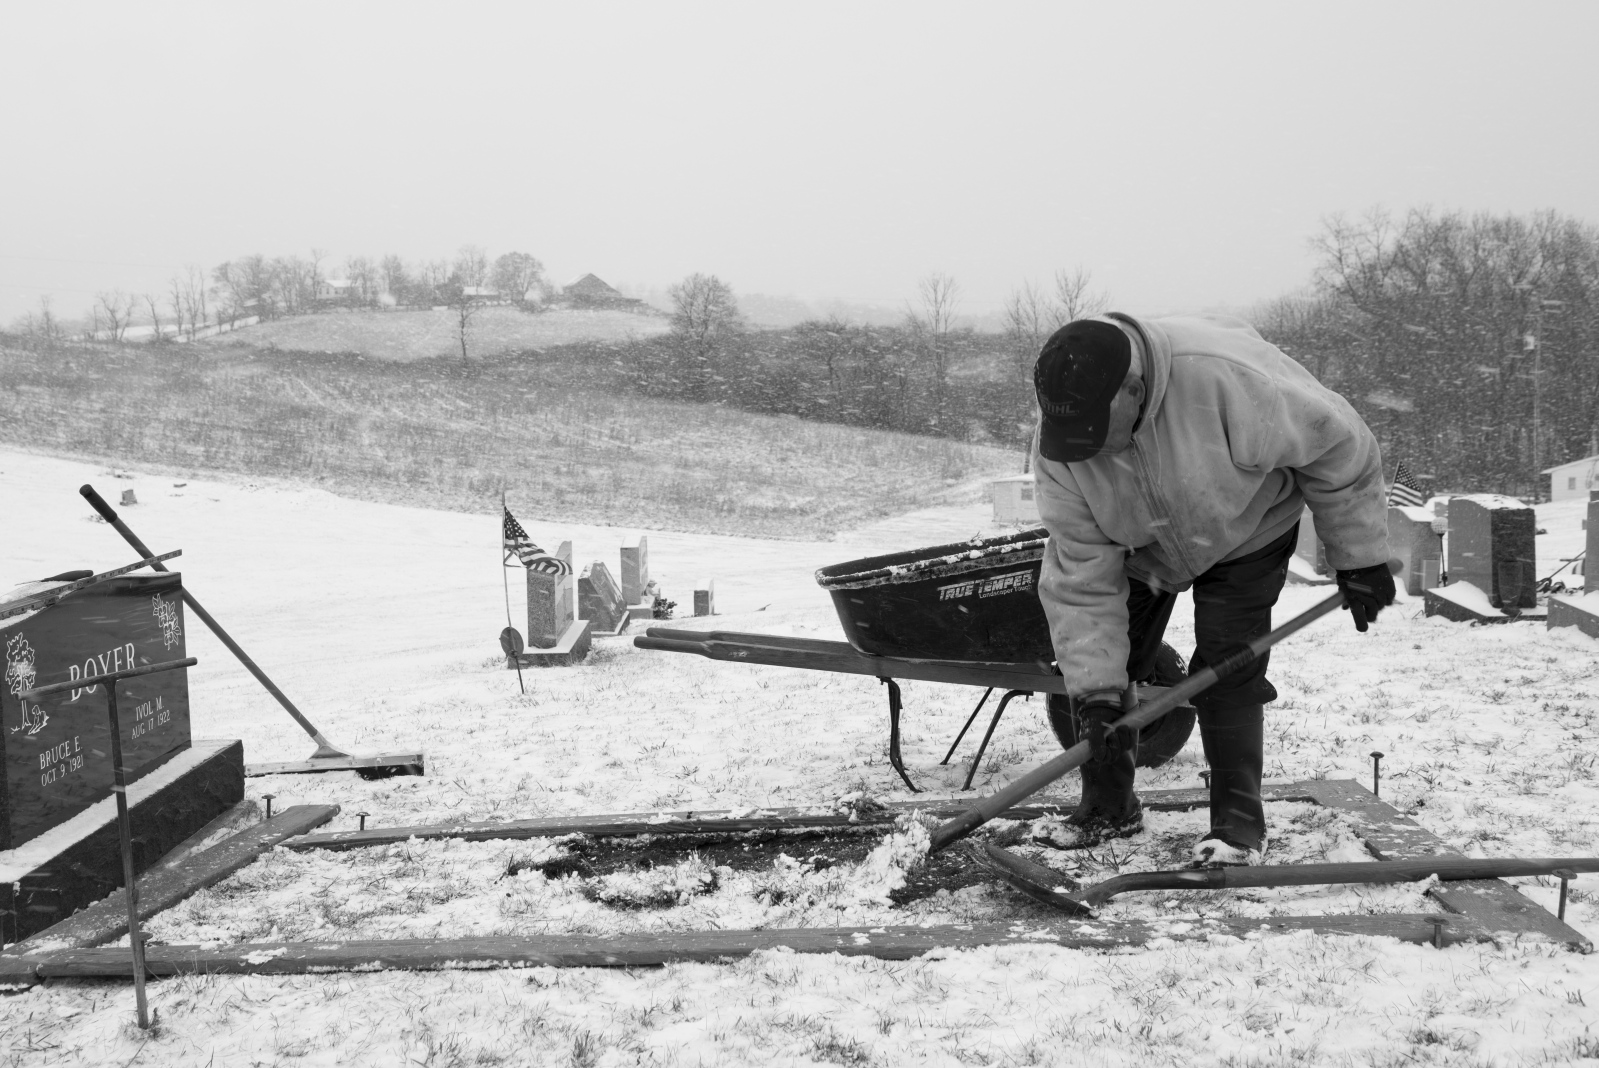 Dorsel Bibbee works through swirling wind and snow to prep a grave site at Coolville Cemetery in Coolville, Ohio, in February 2015.